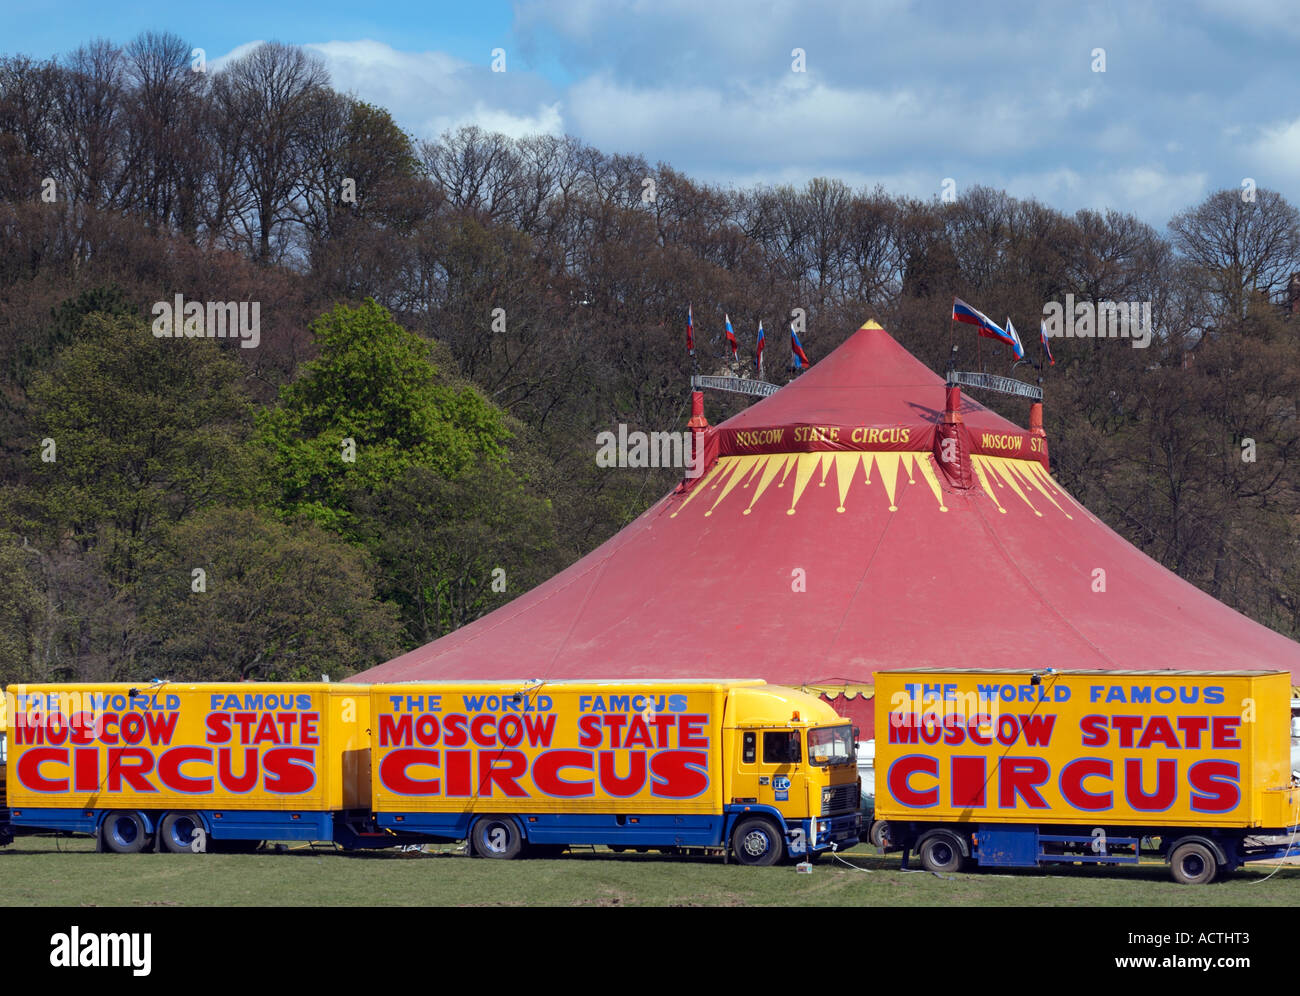 Moscow State Circus  in Endcliffe Park in Sheffield  Great Britain.   & Moscow State Circus